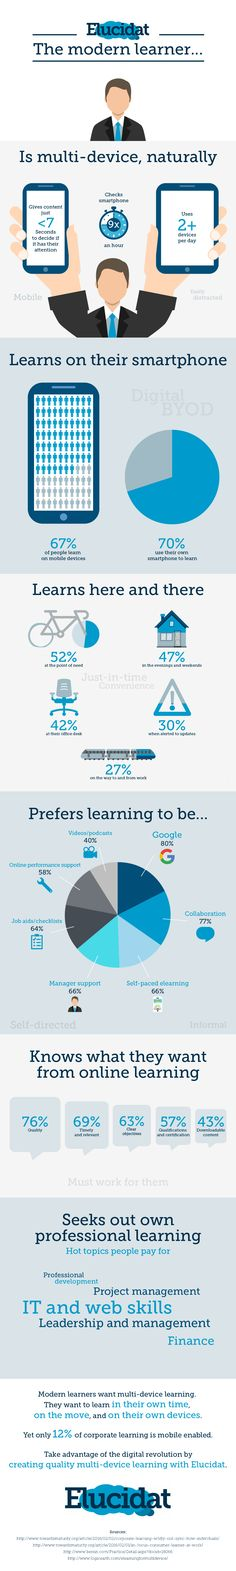 To help you get in sync with modern learners, the infographic gathers facts and stats from various research papers to create a clear modern learner profile.